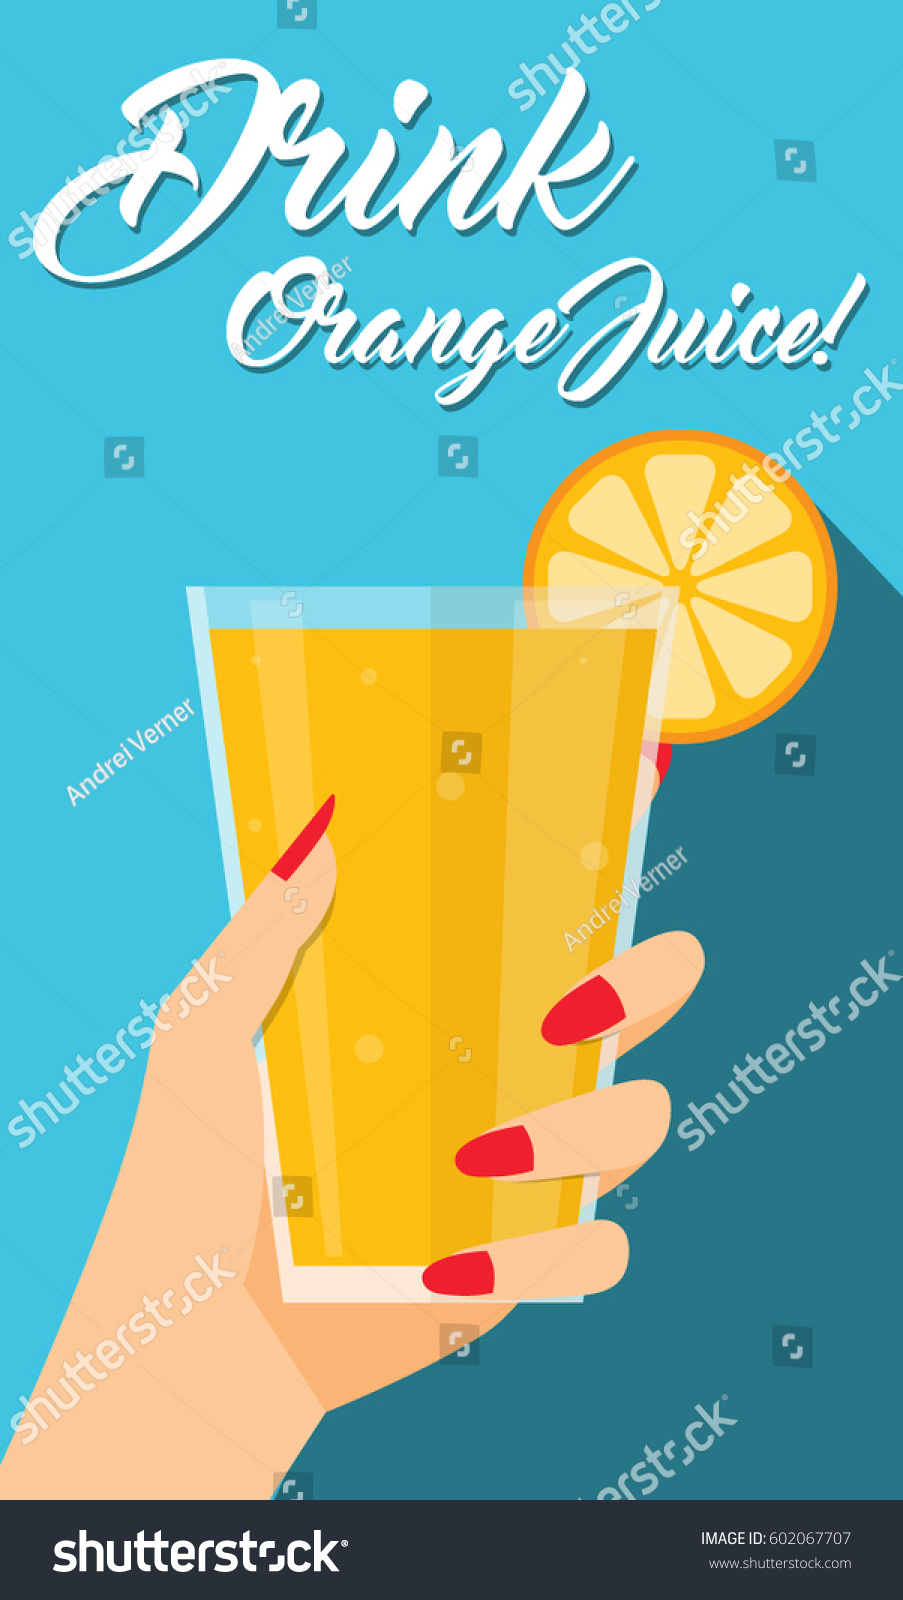 Glass juice cups design - Woman Hand Holding Fruit Orange Juice Glass Cup Drink Healthy Beverage Flyer Poster Simple